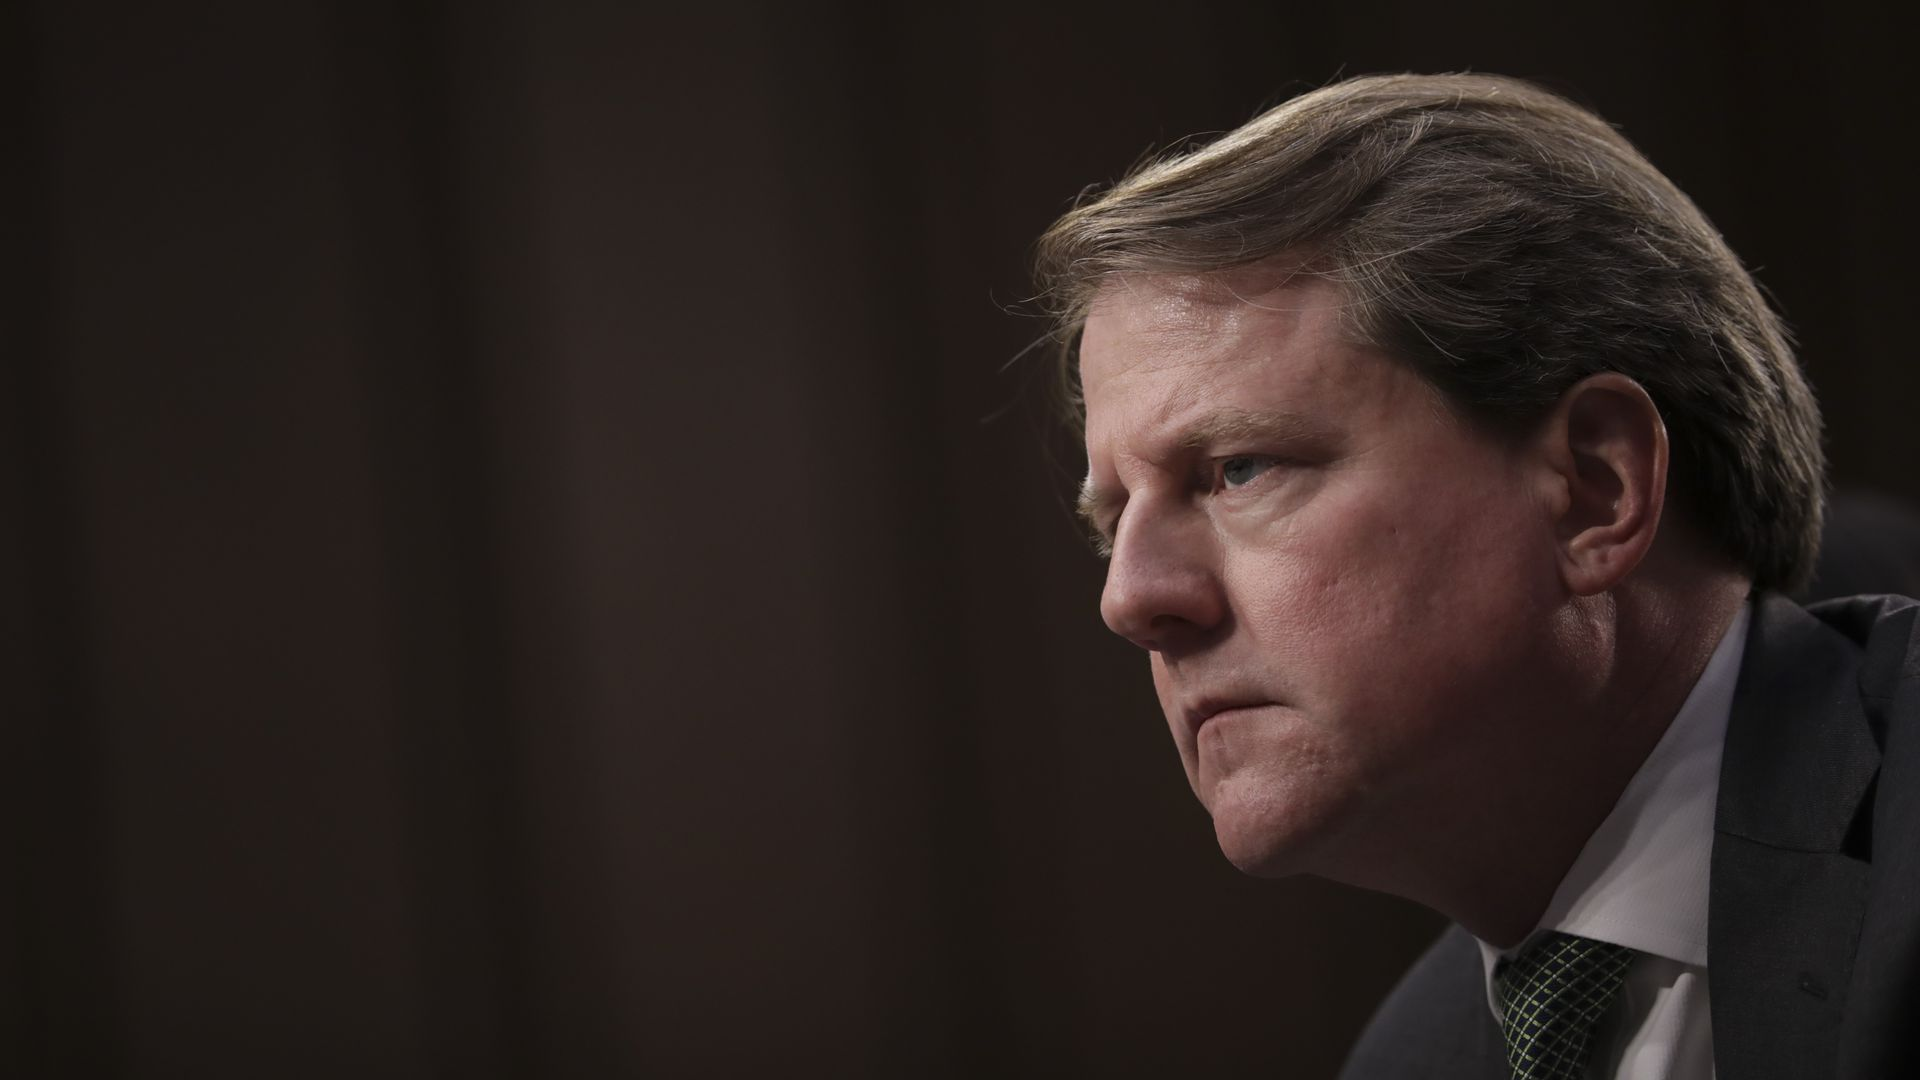 In this image, Don McGahn looks to the left.